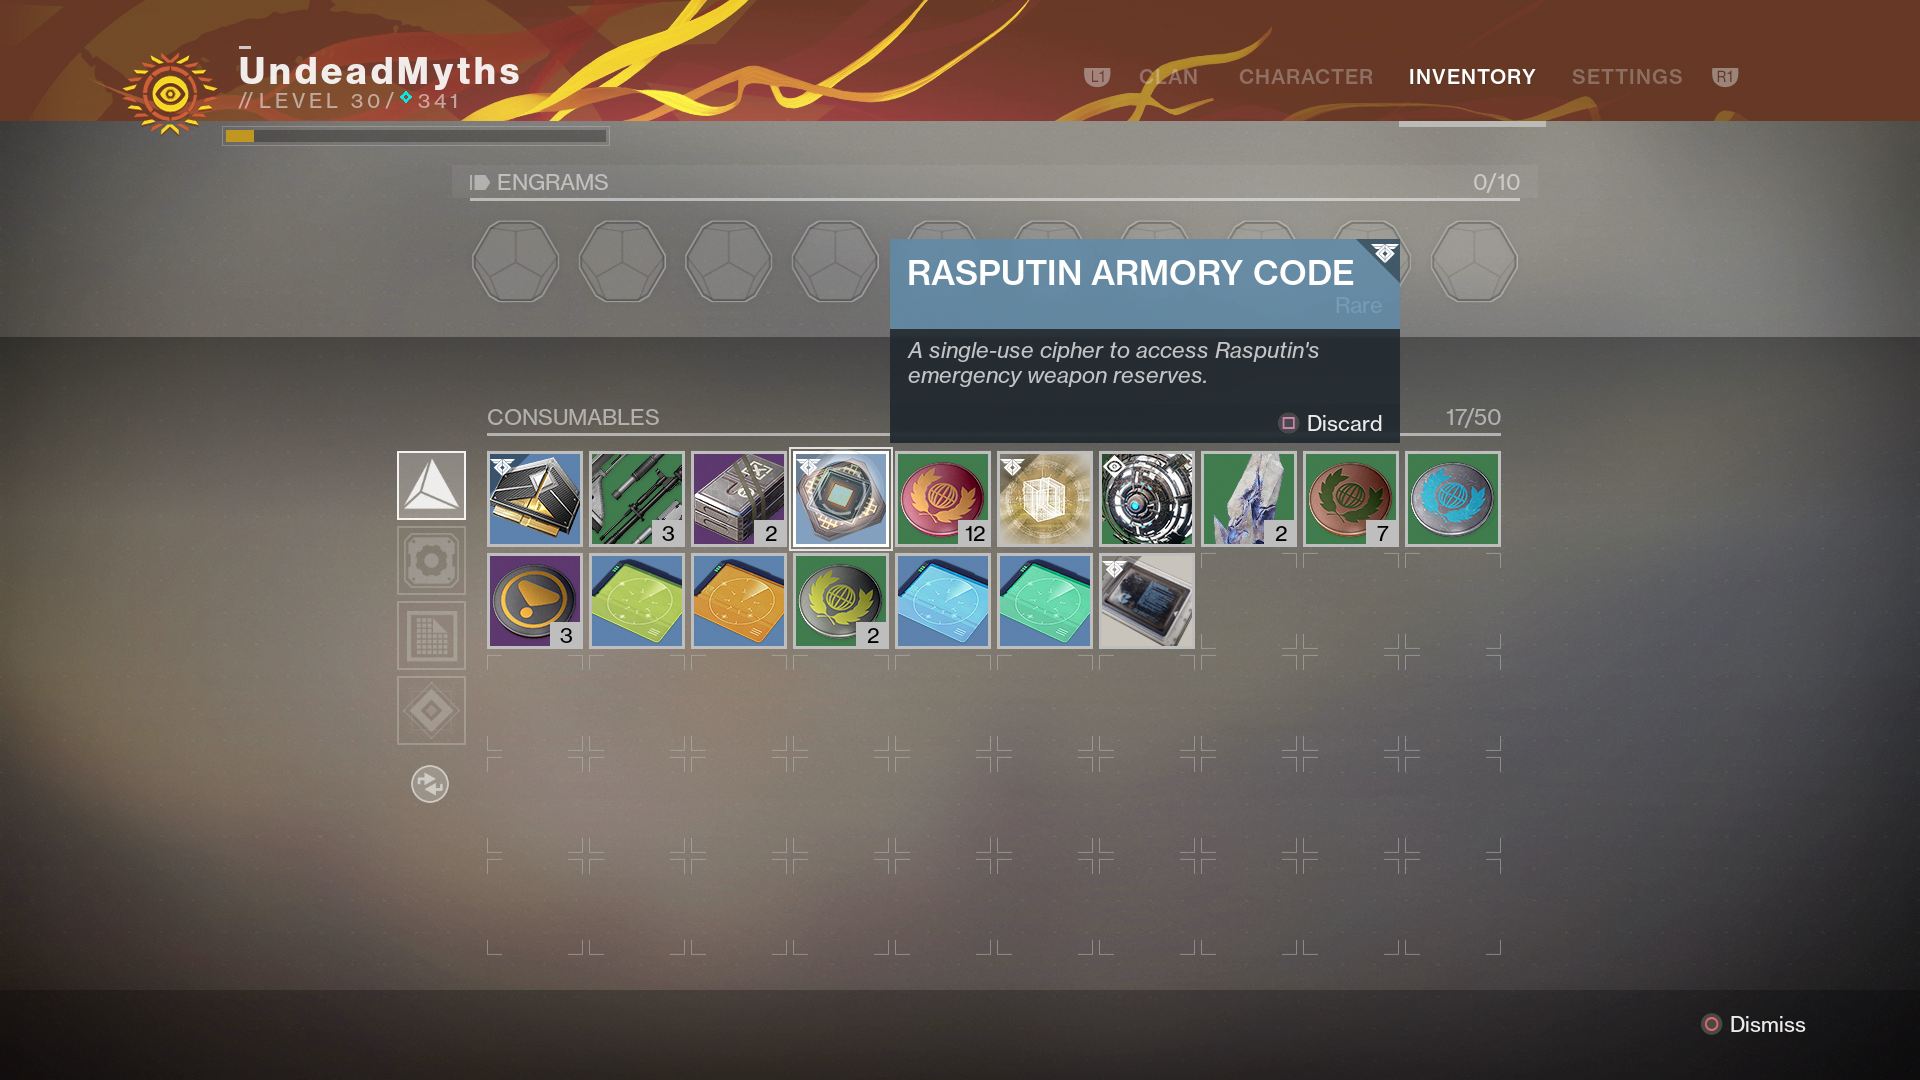 Destiny 2 Rasputin Armory Codes - How to Find and Use